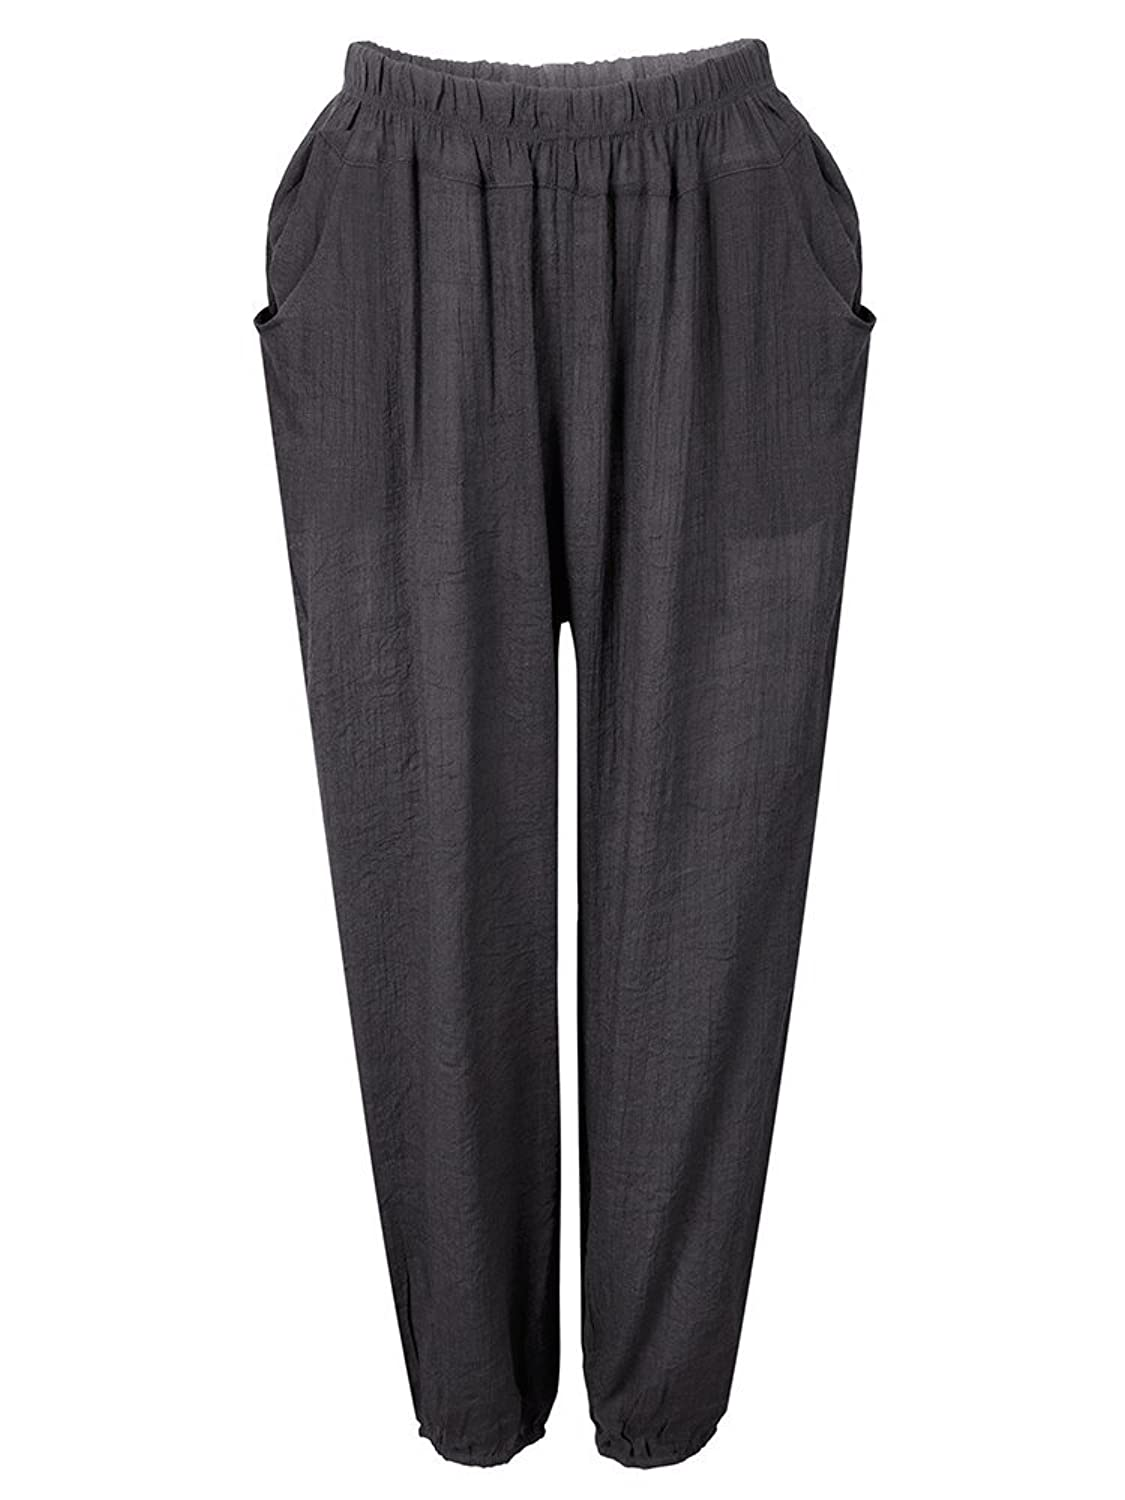 Casual Loose Linen Stretch Waist Women Pocket Pants Trousers